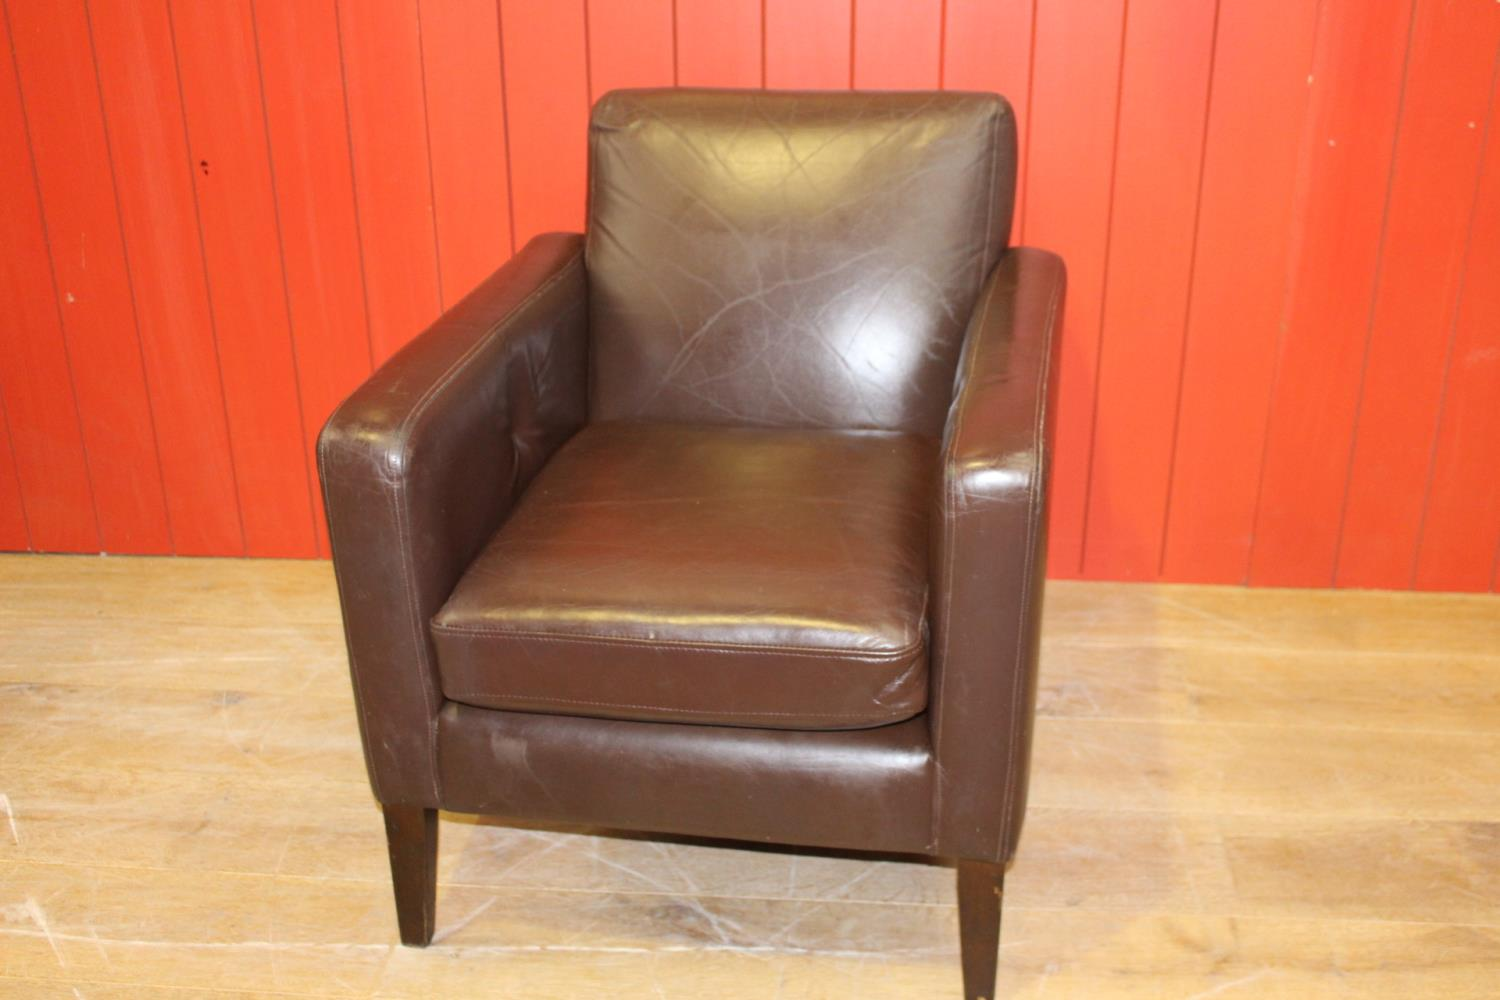 Single leather upholstered retro style armchair.